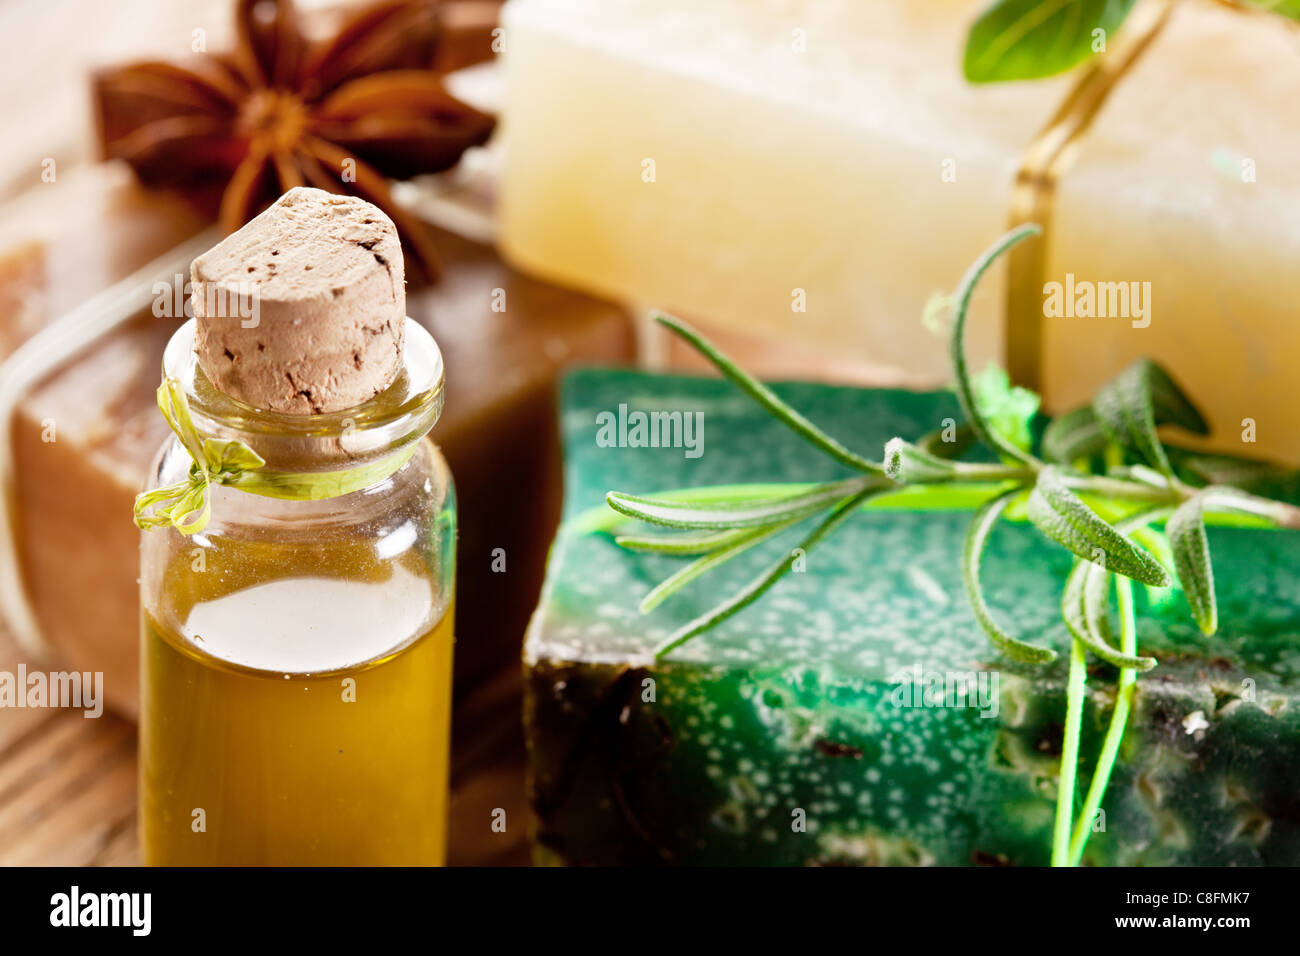 Pieces of natural soap with herb and oil. - Stock Image